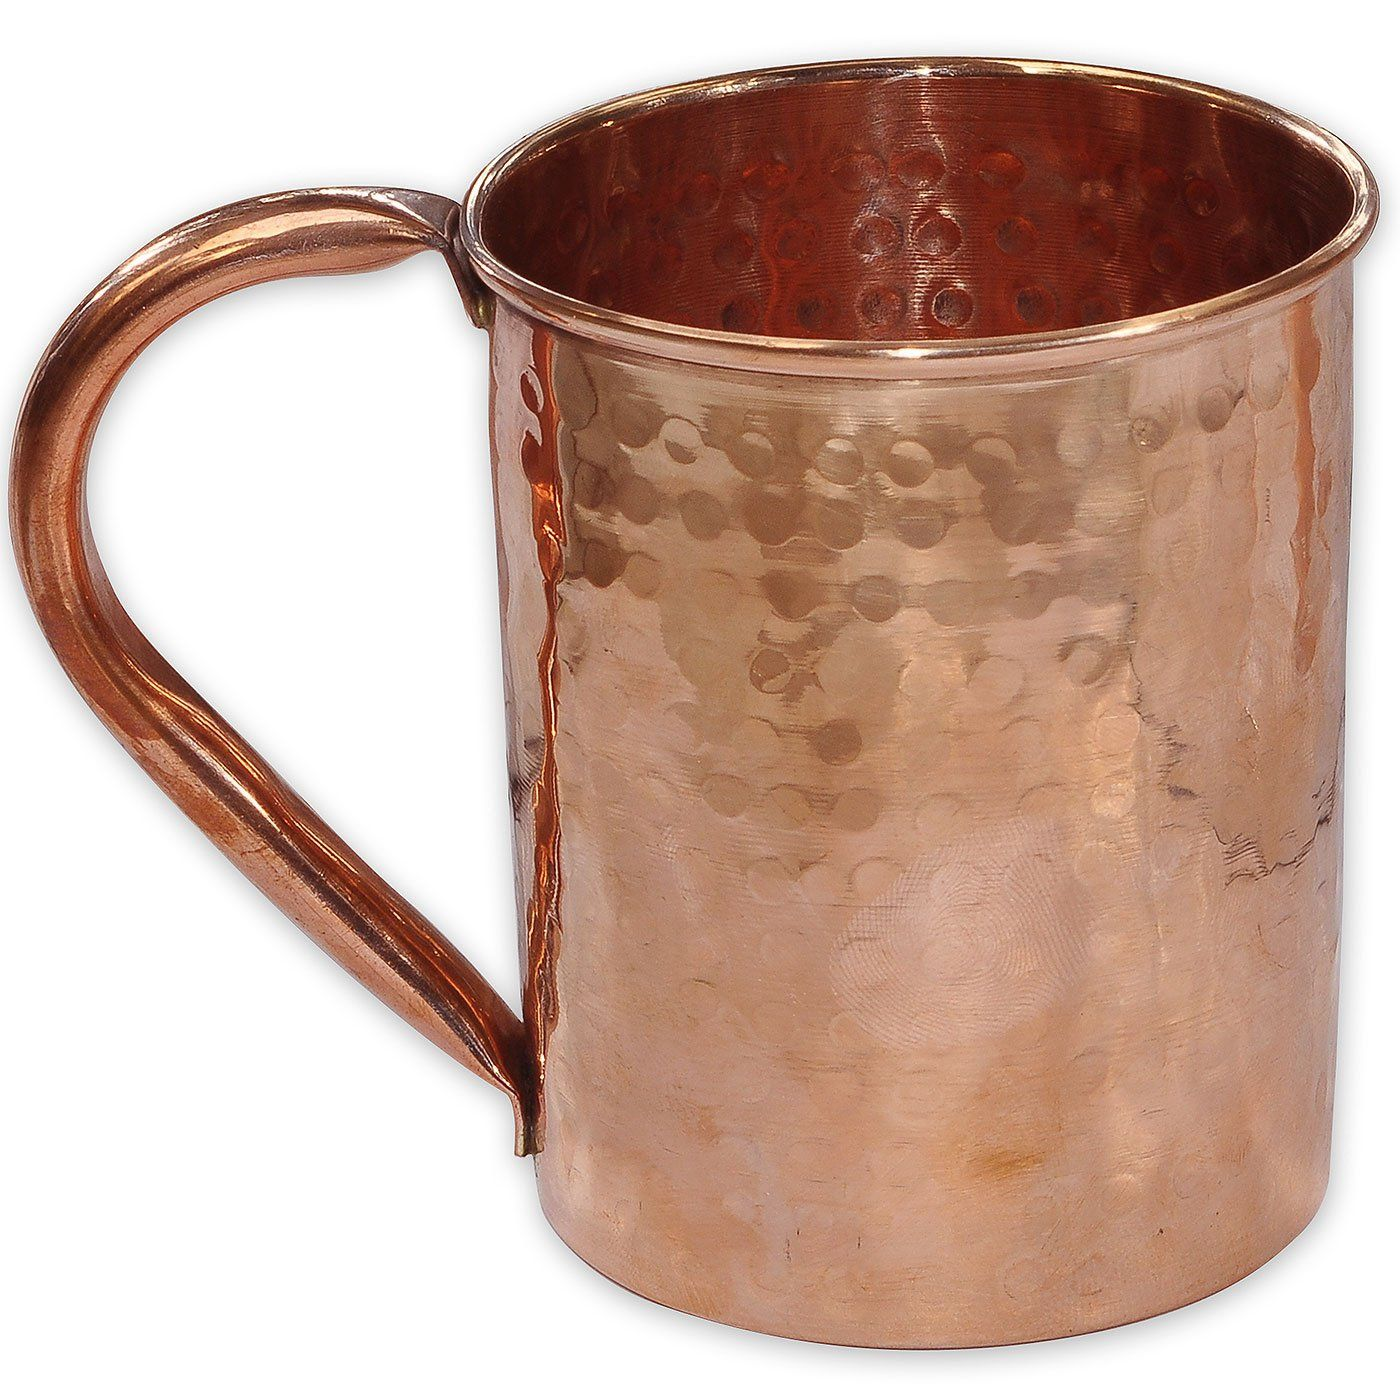 Handmade Copper Moscow Mule Mug Hammered Lacquered Finish Copper